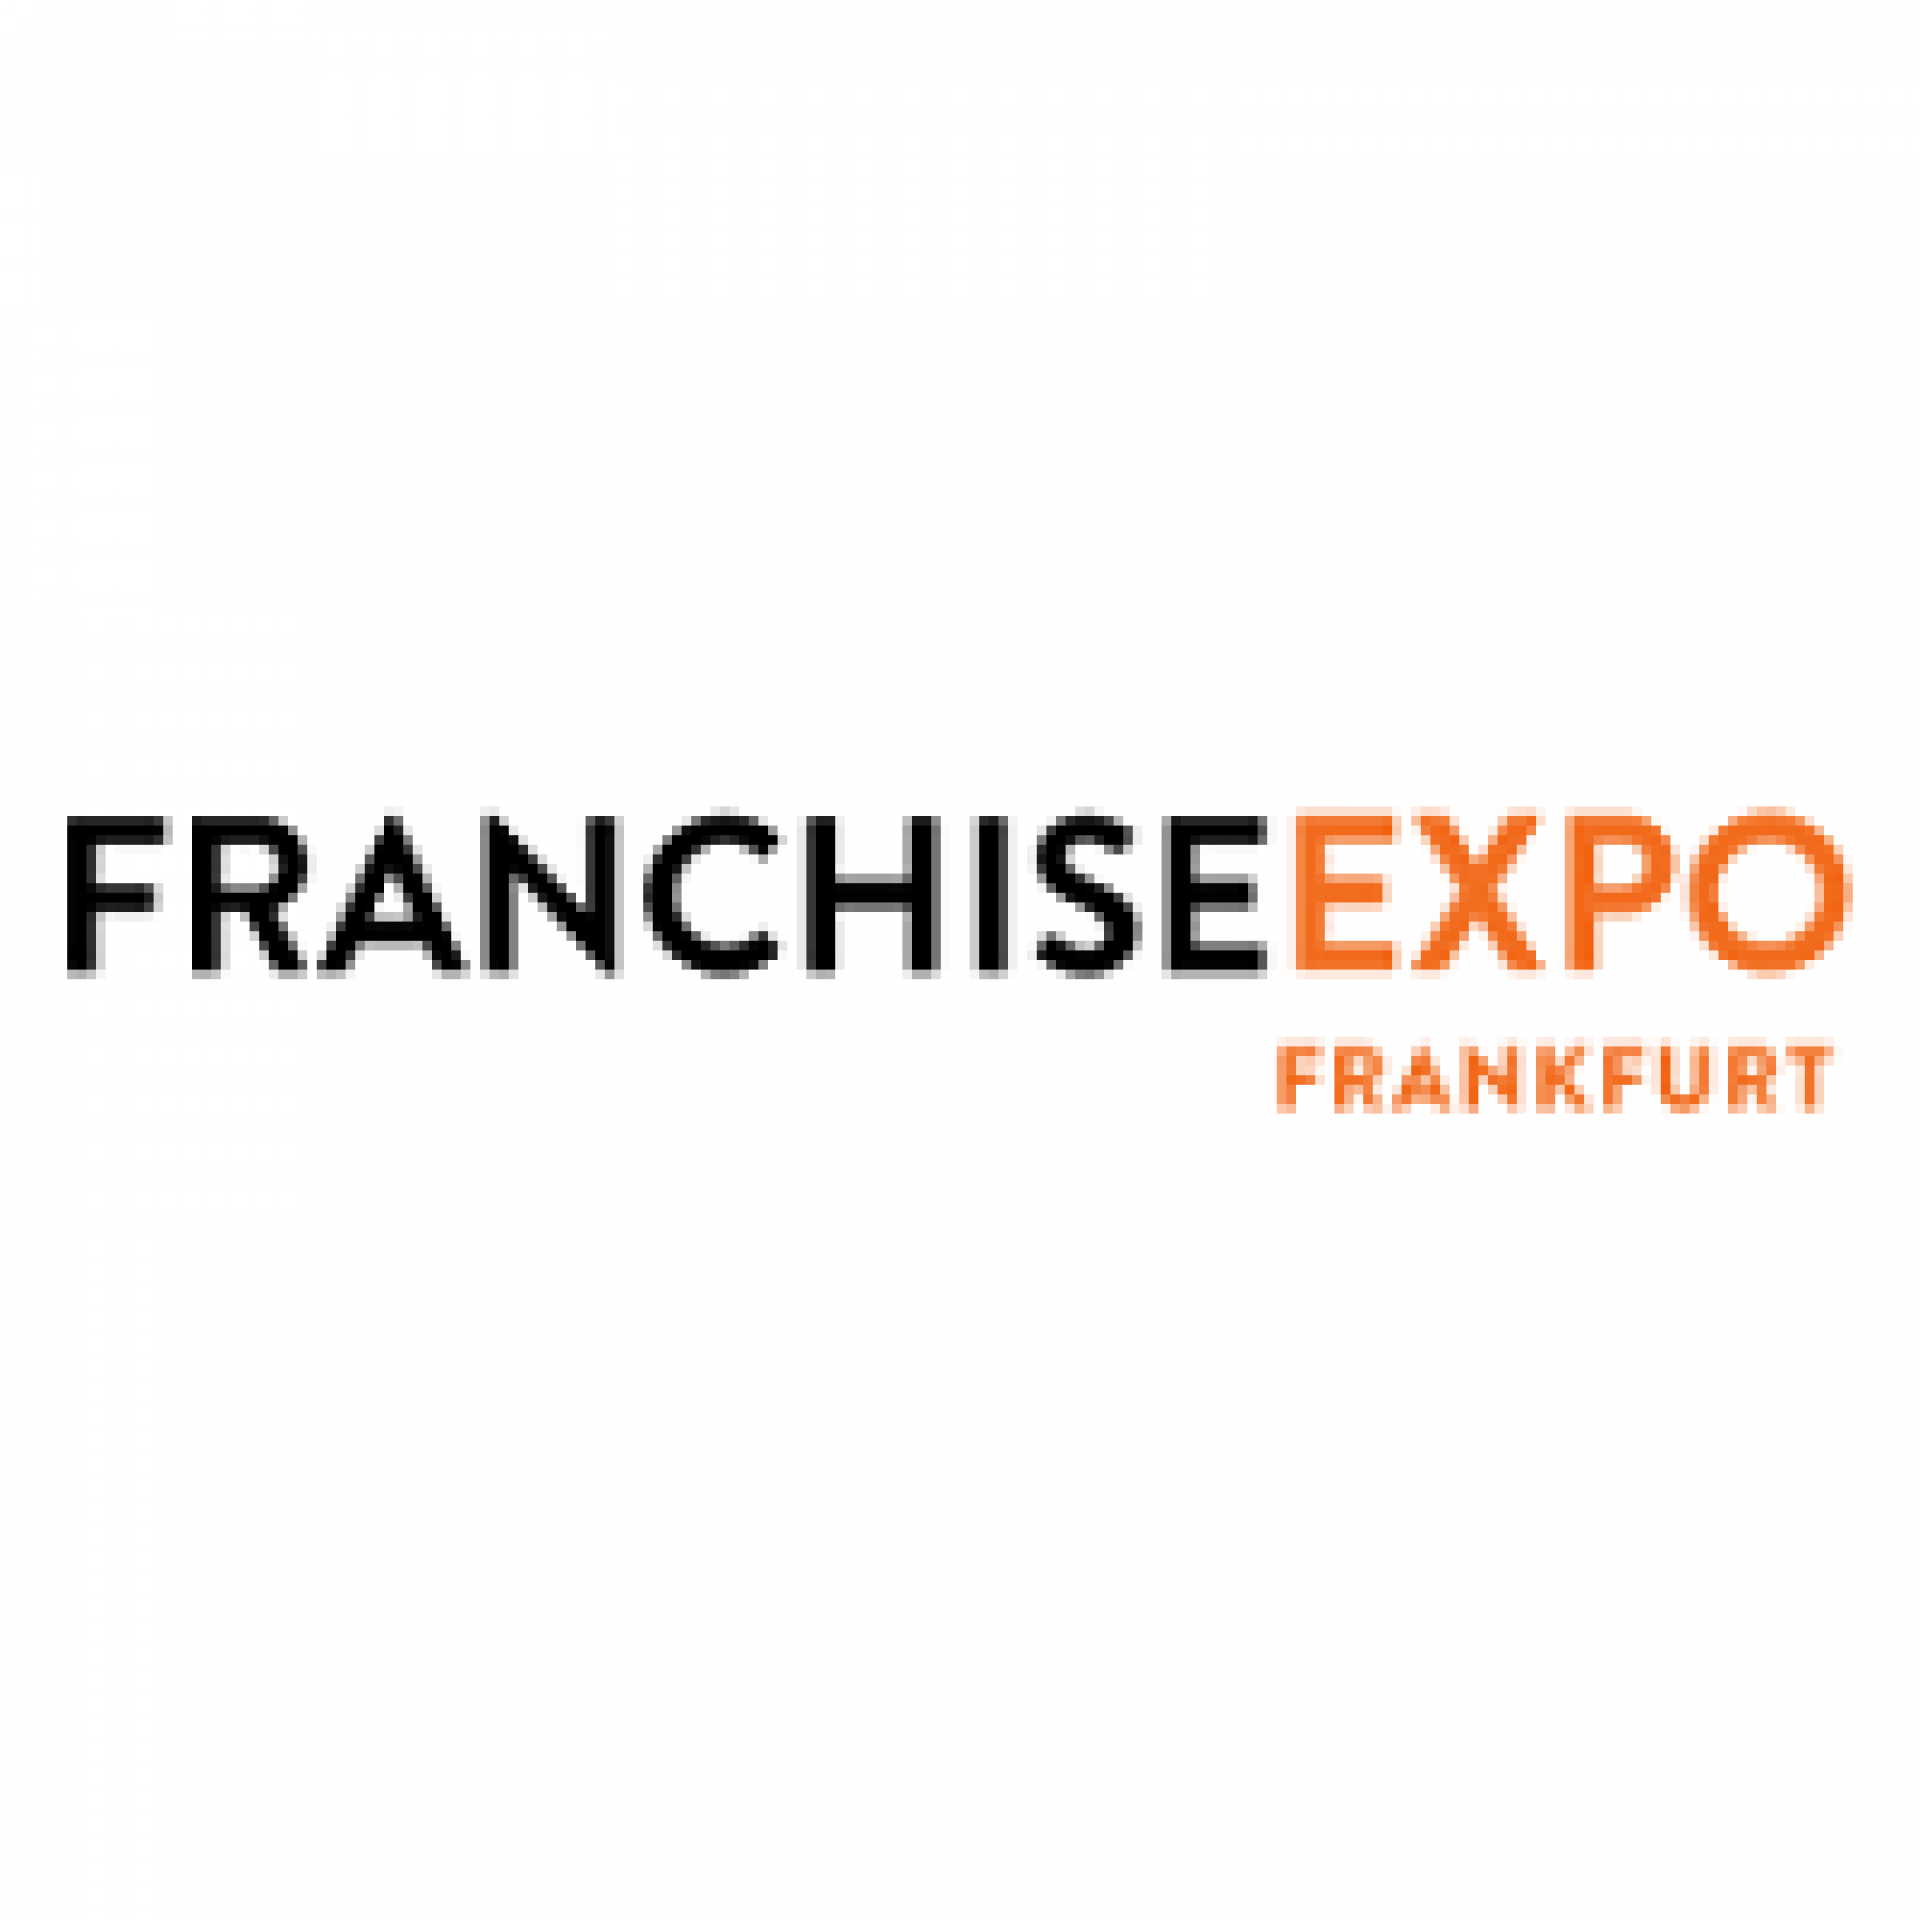 Franchise Expo Frankfurt